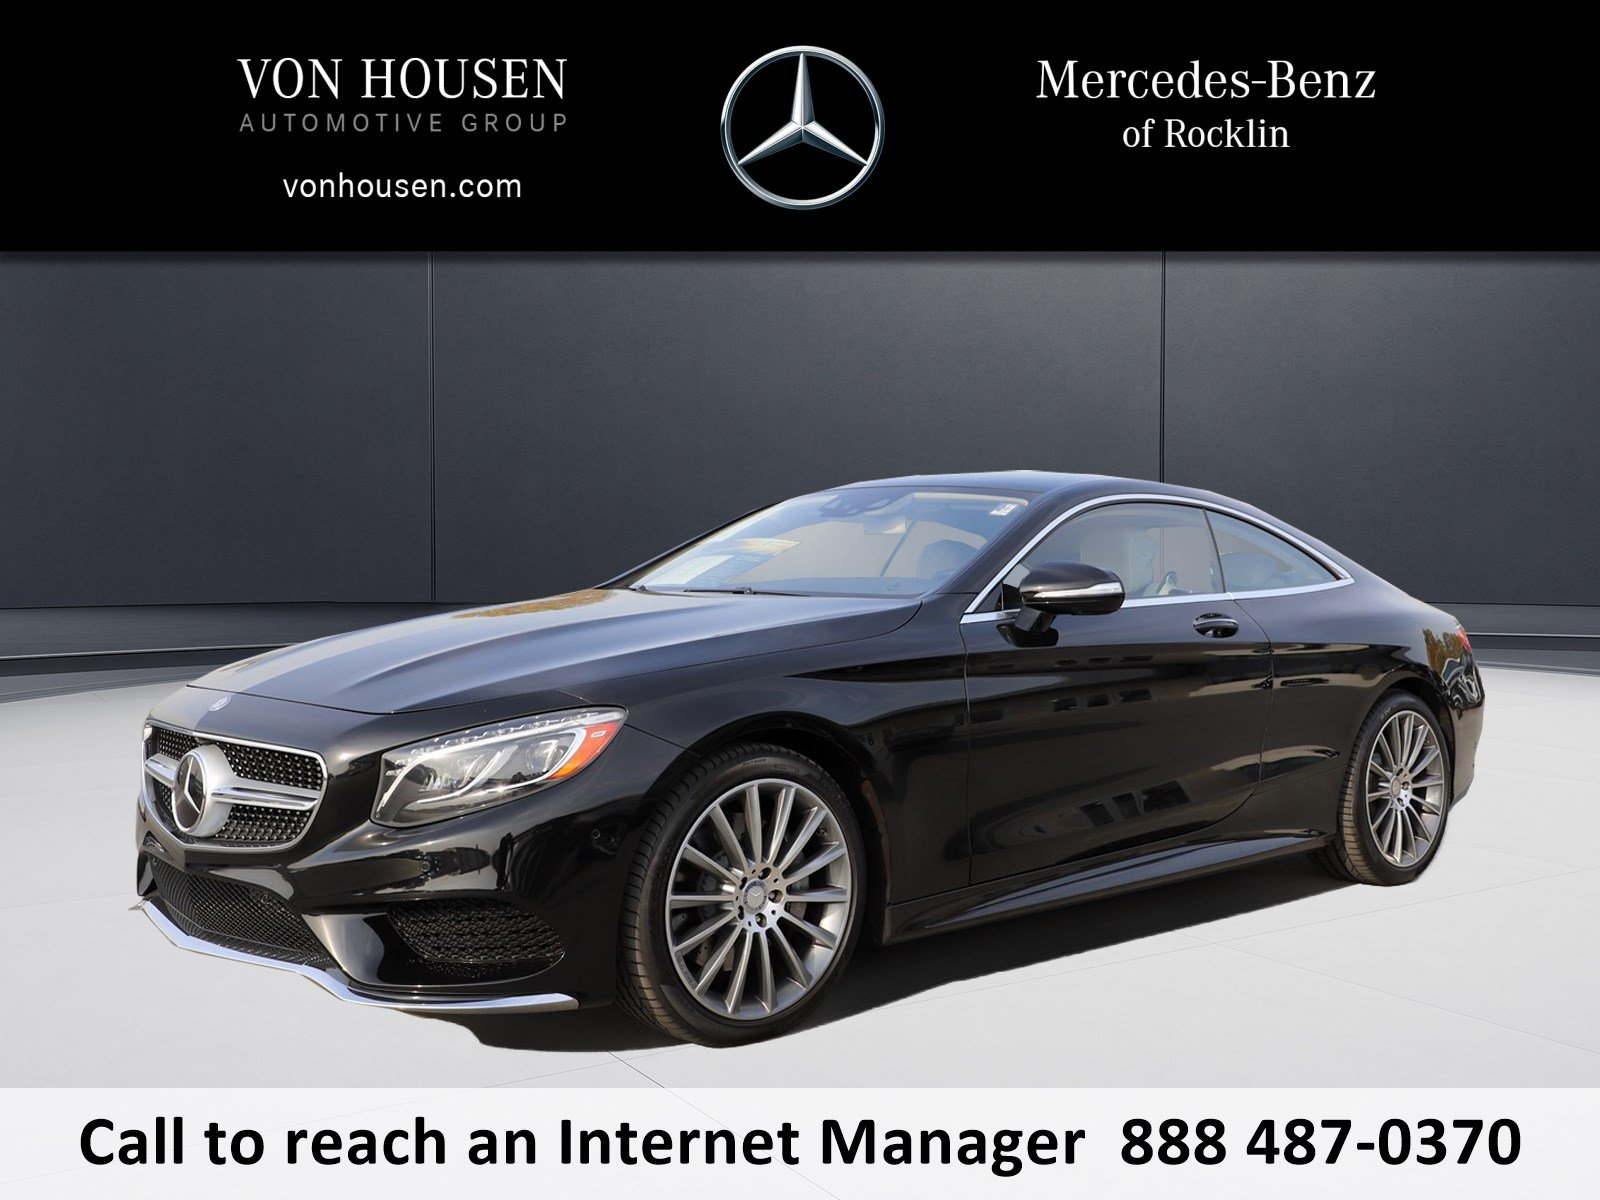 Certified Pre Owned 2015 Mercedes Benz S Class S 550 2dr Car in